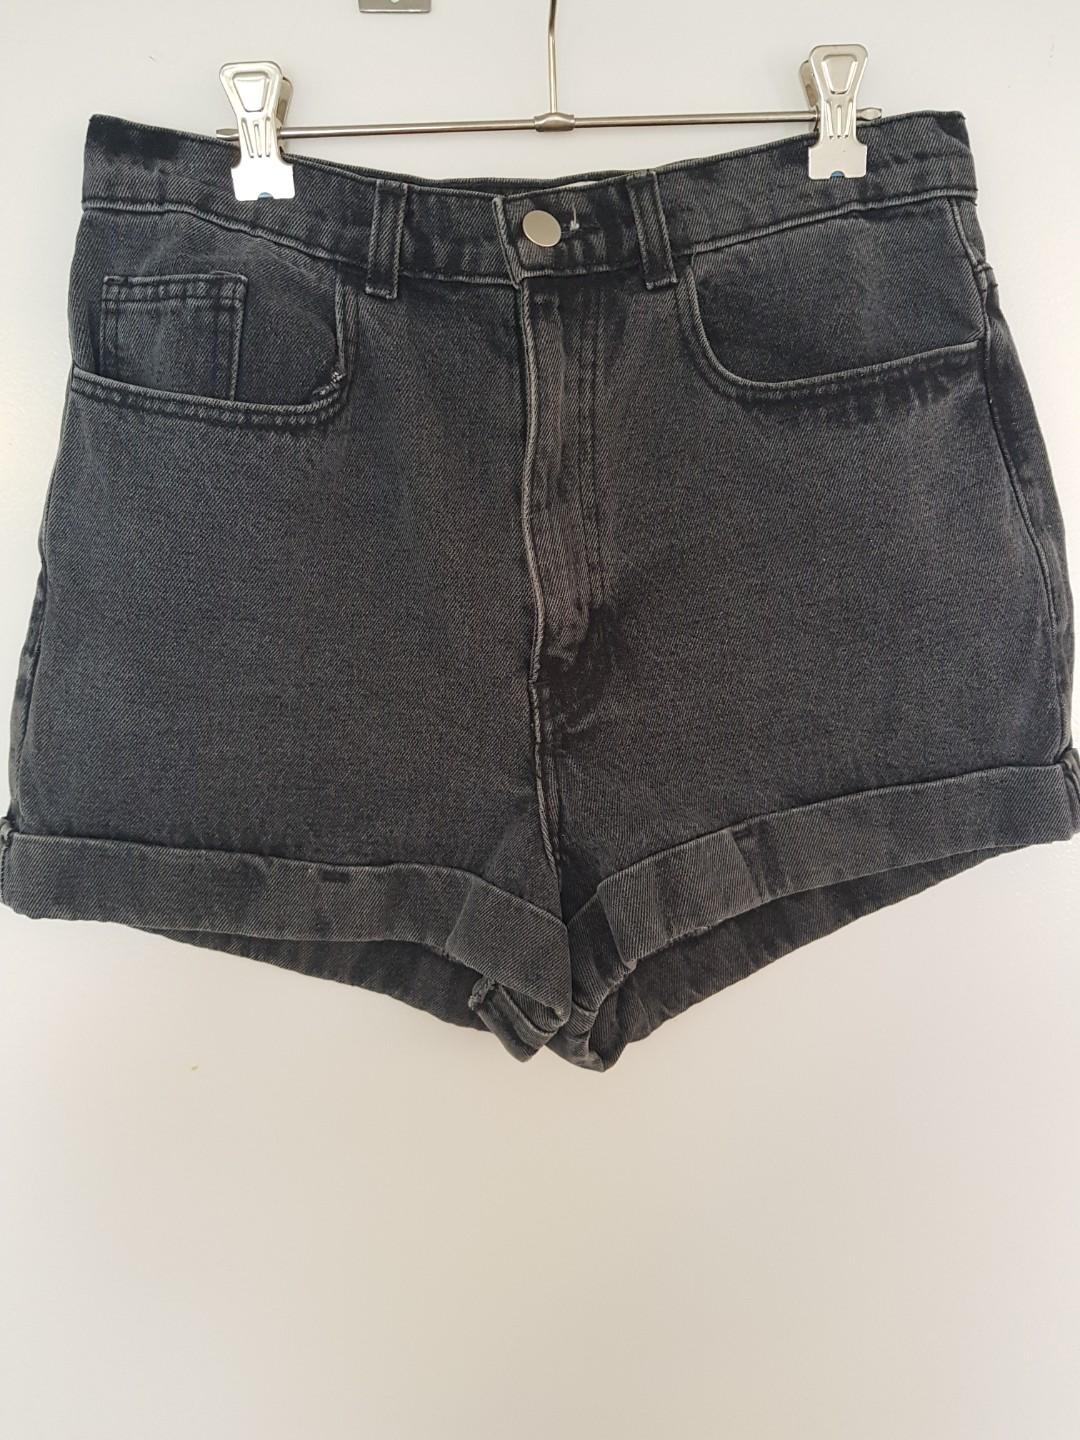 American Apparel high waist denim shorts. Washed black/grey.